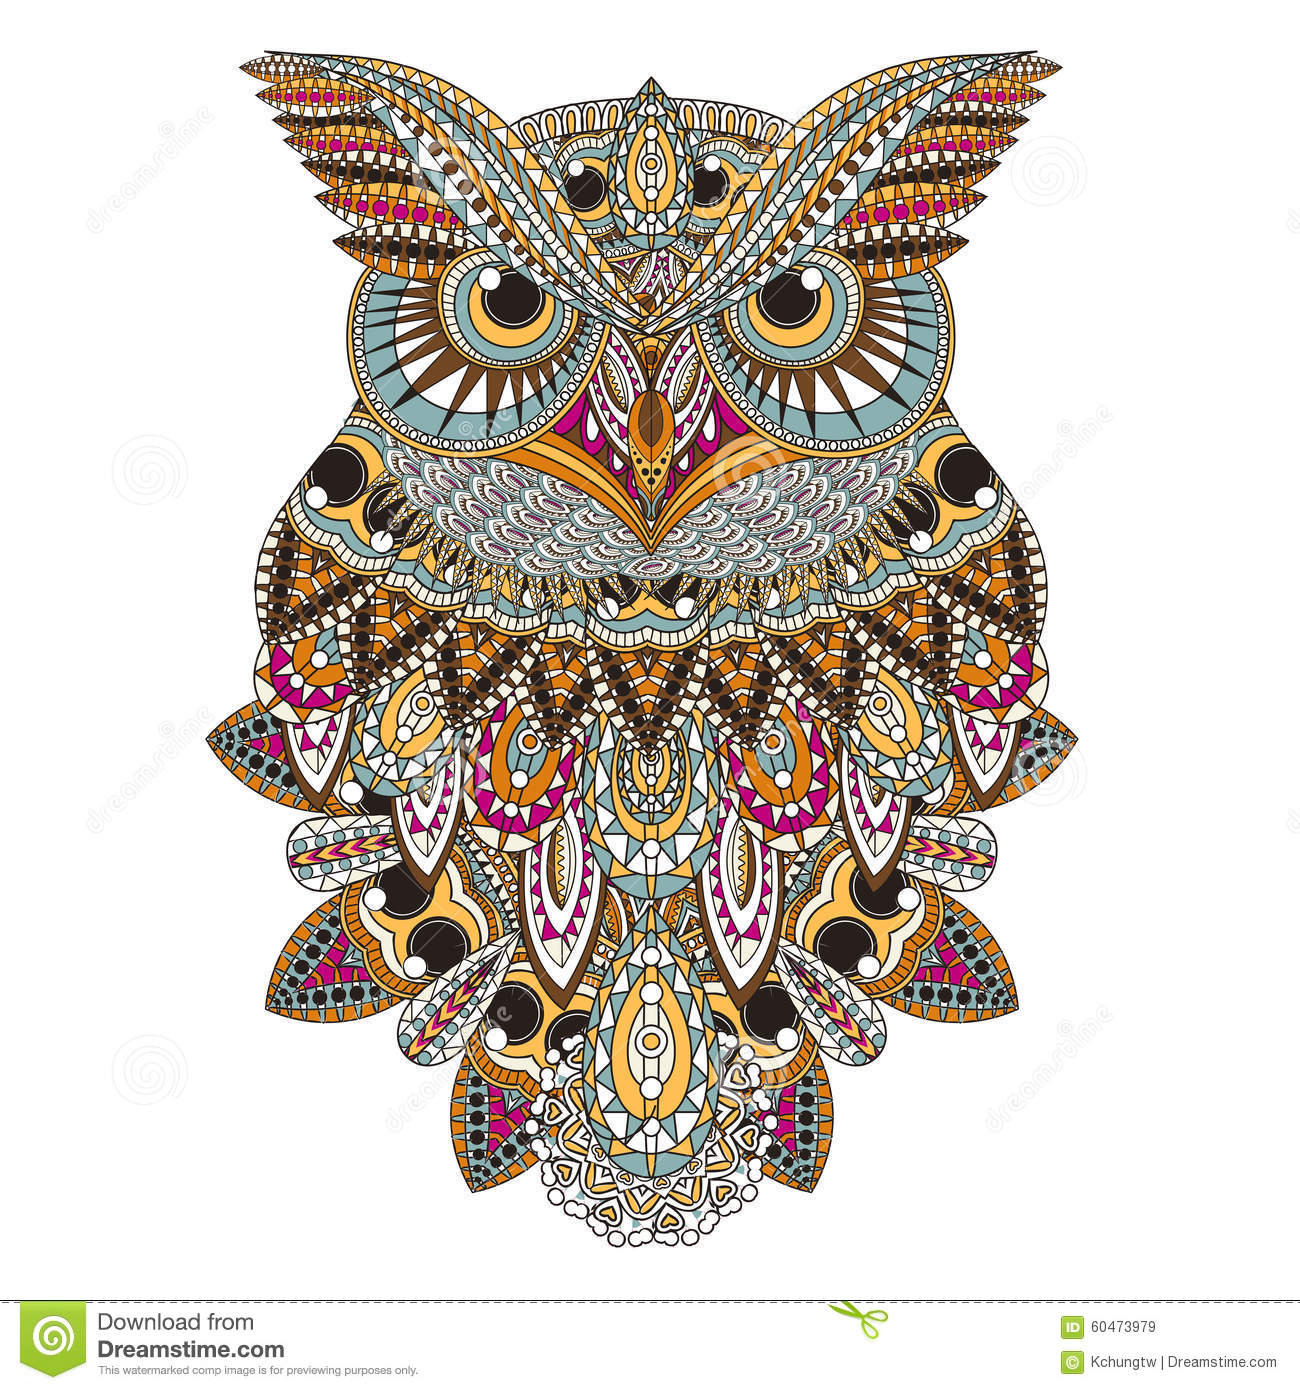 Sumptuous Owl Coloring Page In Exquisite Style Royalty Free Illustration